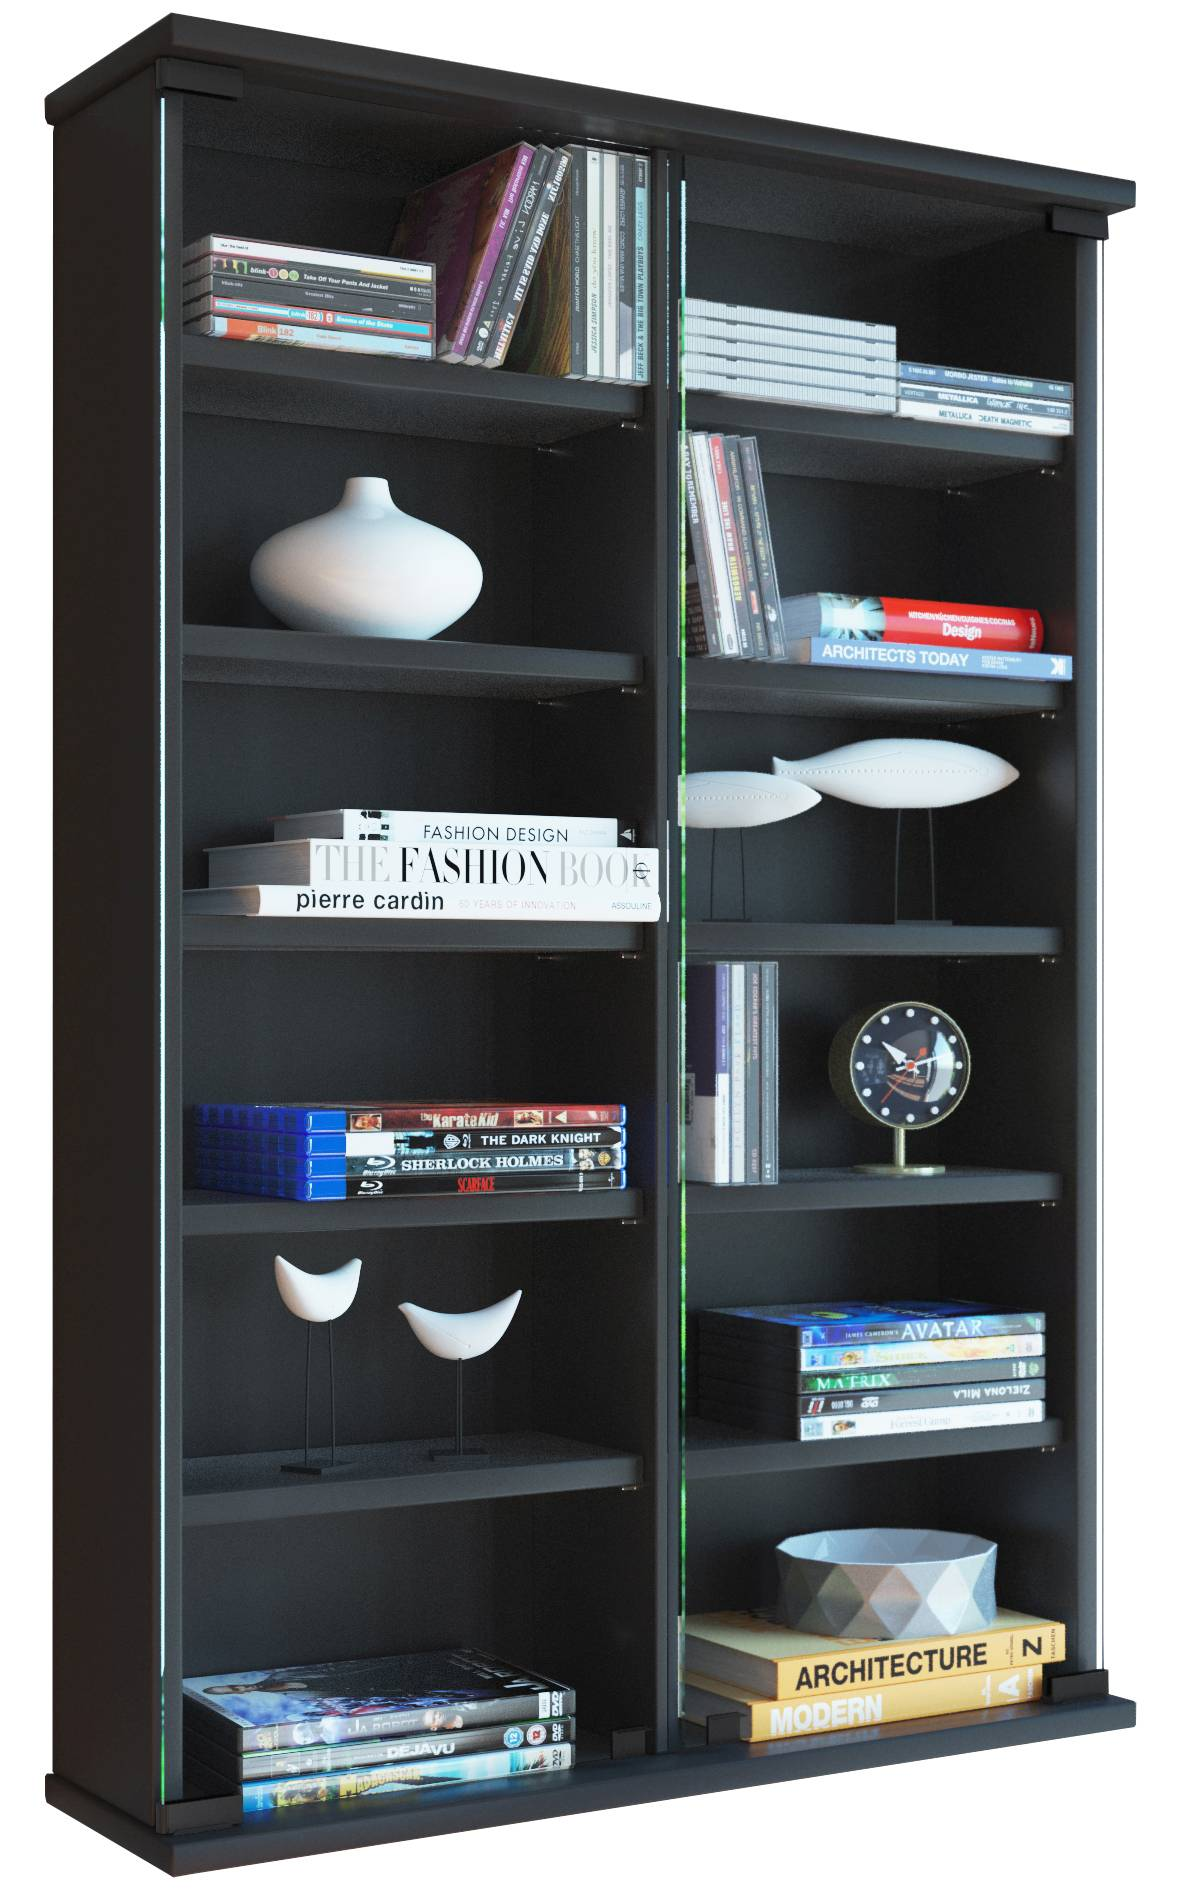 vcm cd dvd wand regal zuntisa jetzt g nstig kaufen. Black Bedroom Furniture Sets. Home Design Ideas